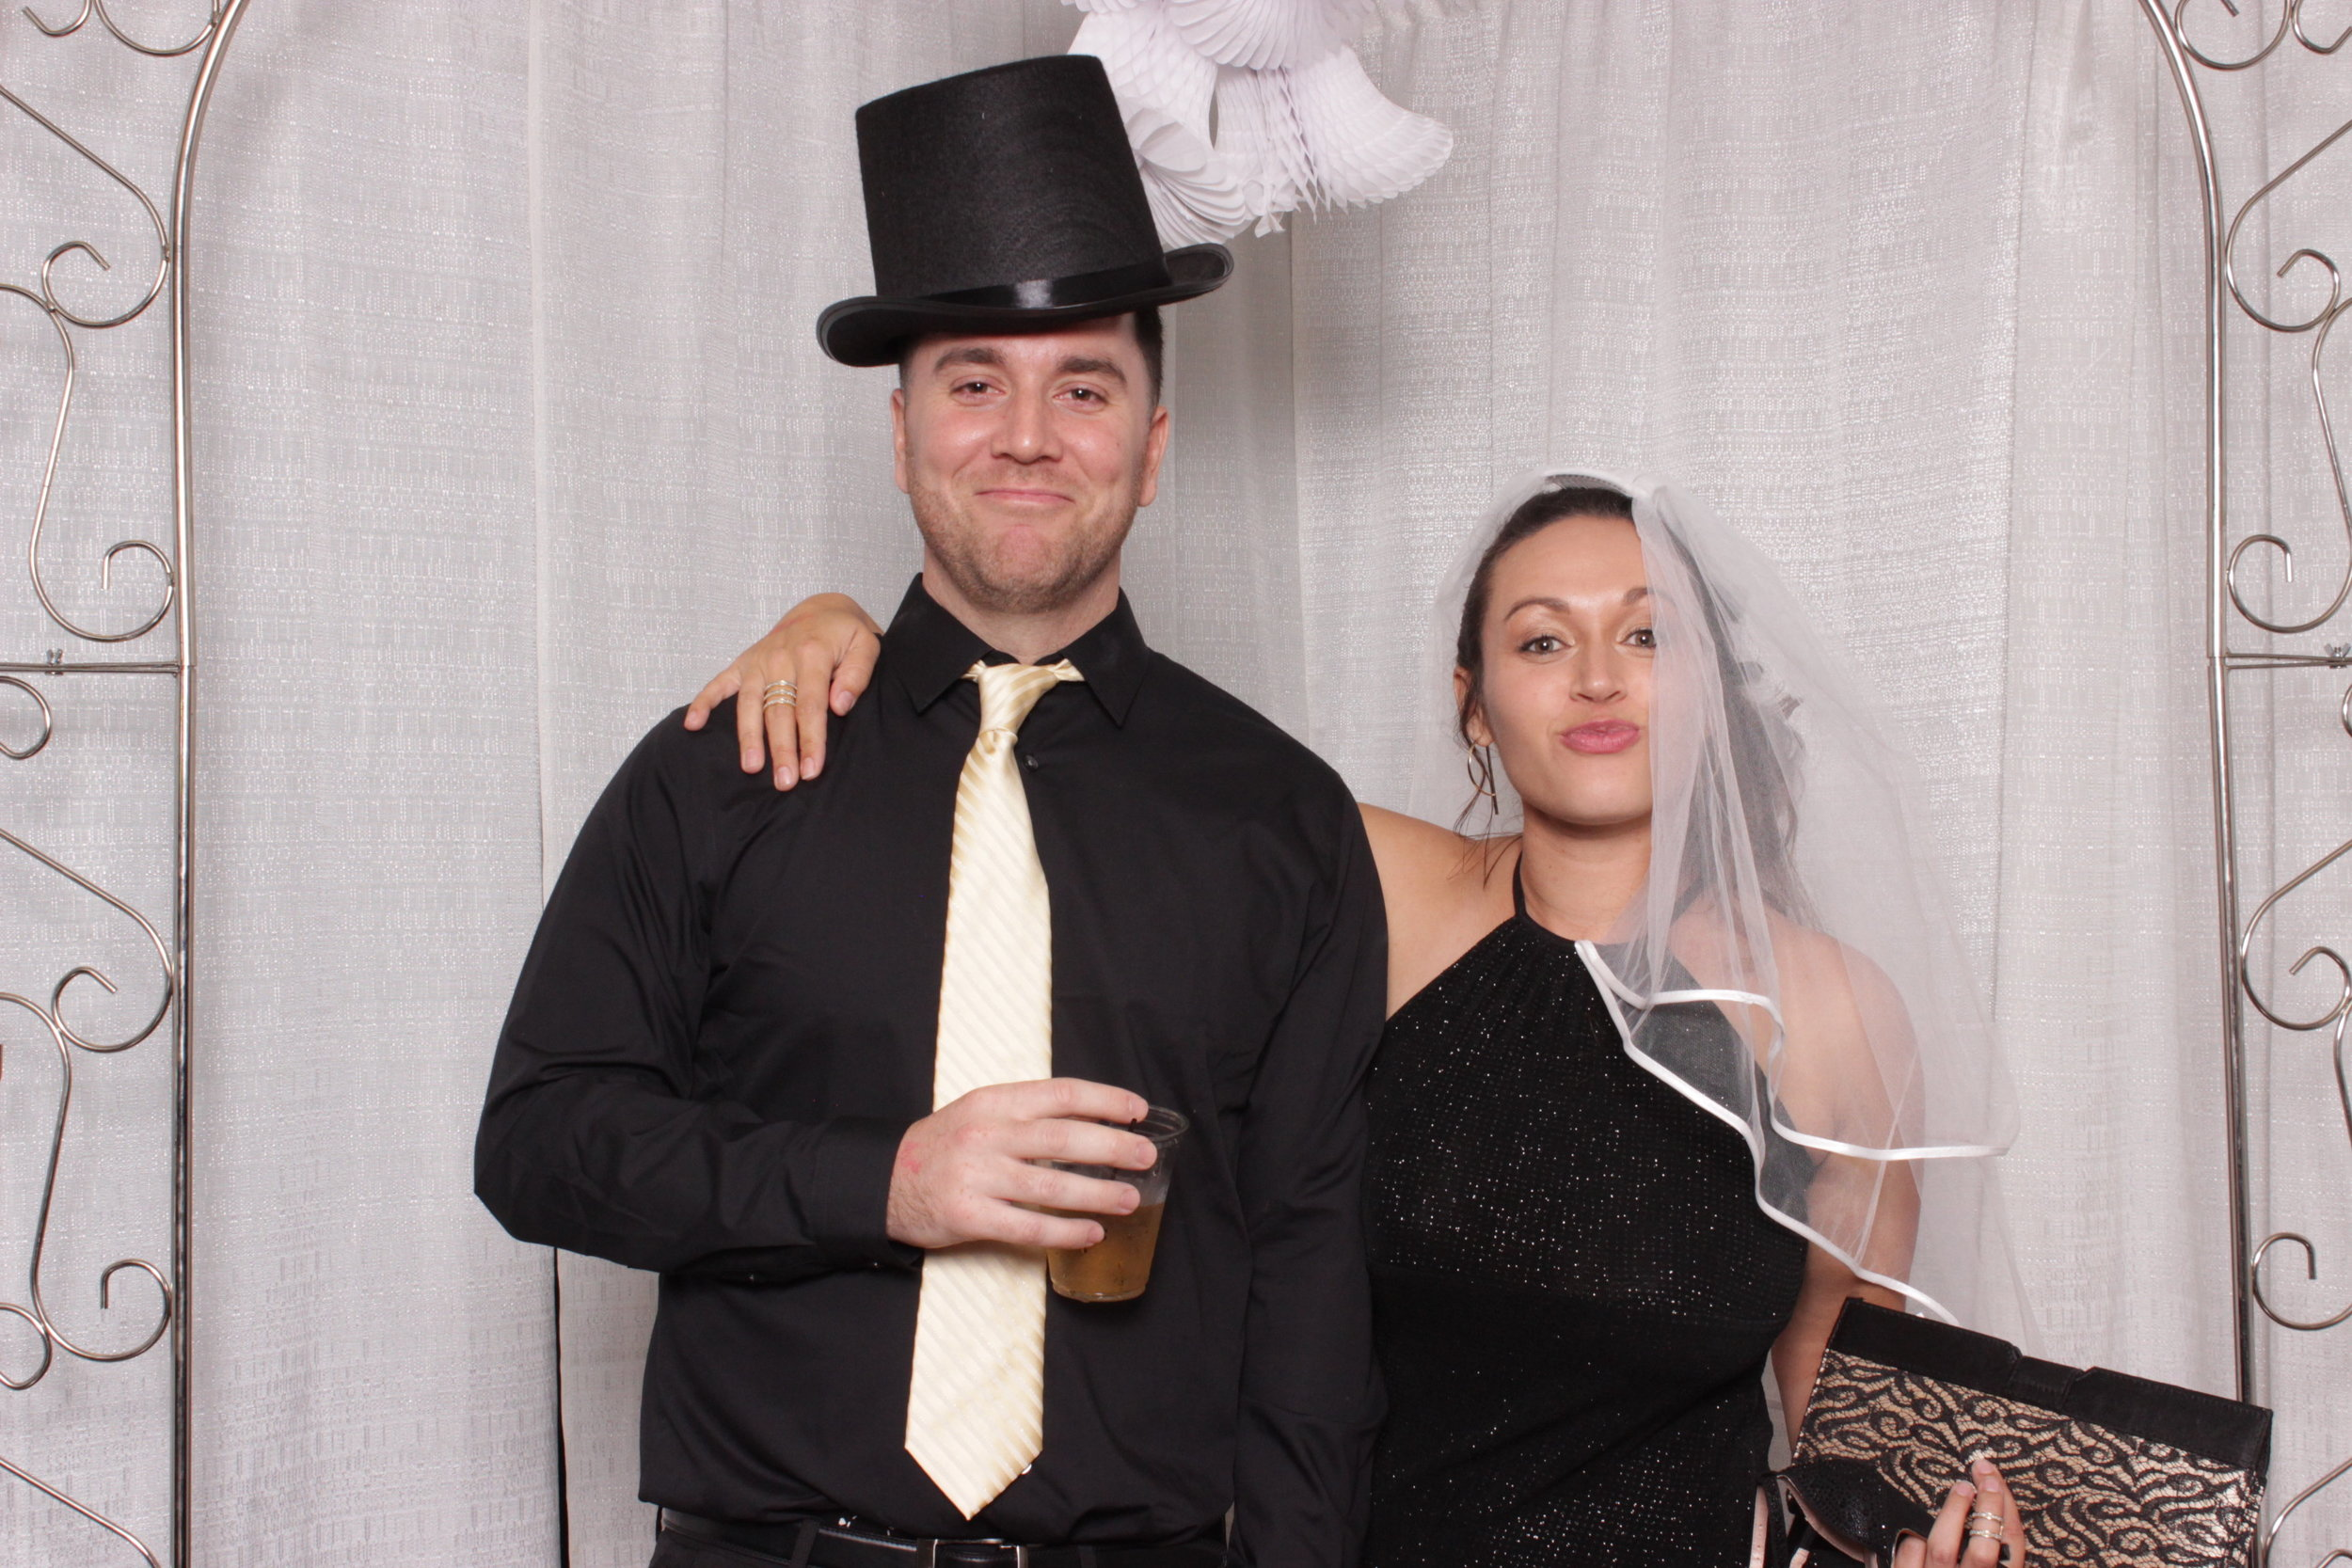 Chico-photo-booth-rental-high-quality